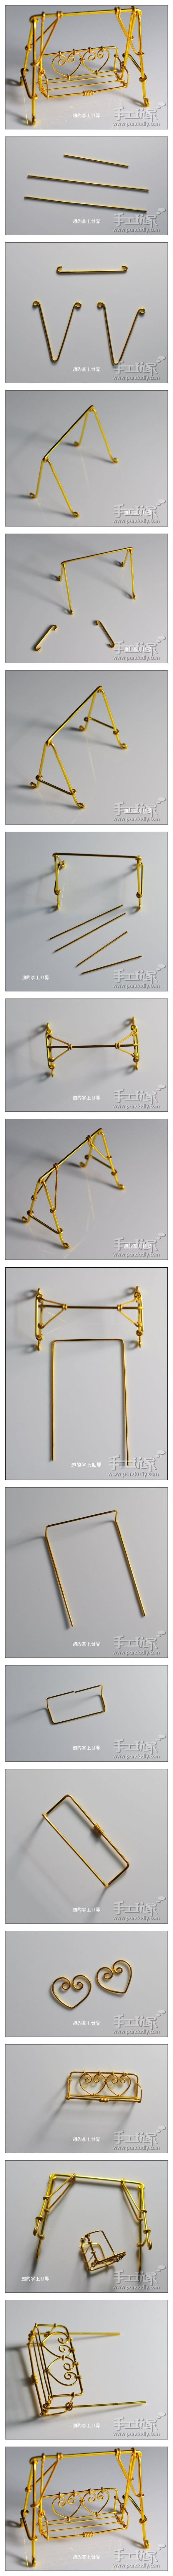 cute little swing statue. or remove swing and use the frame as a jewelry holder